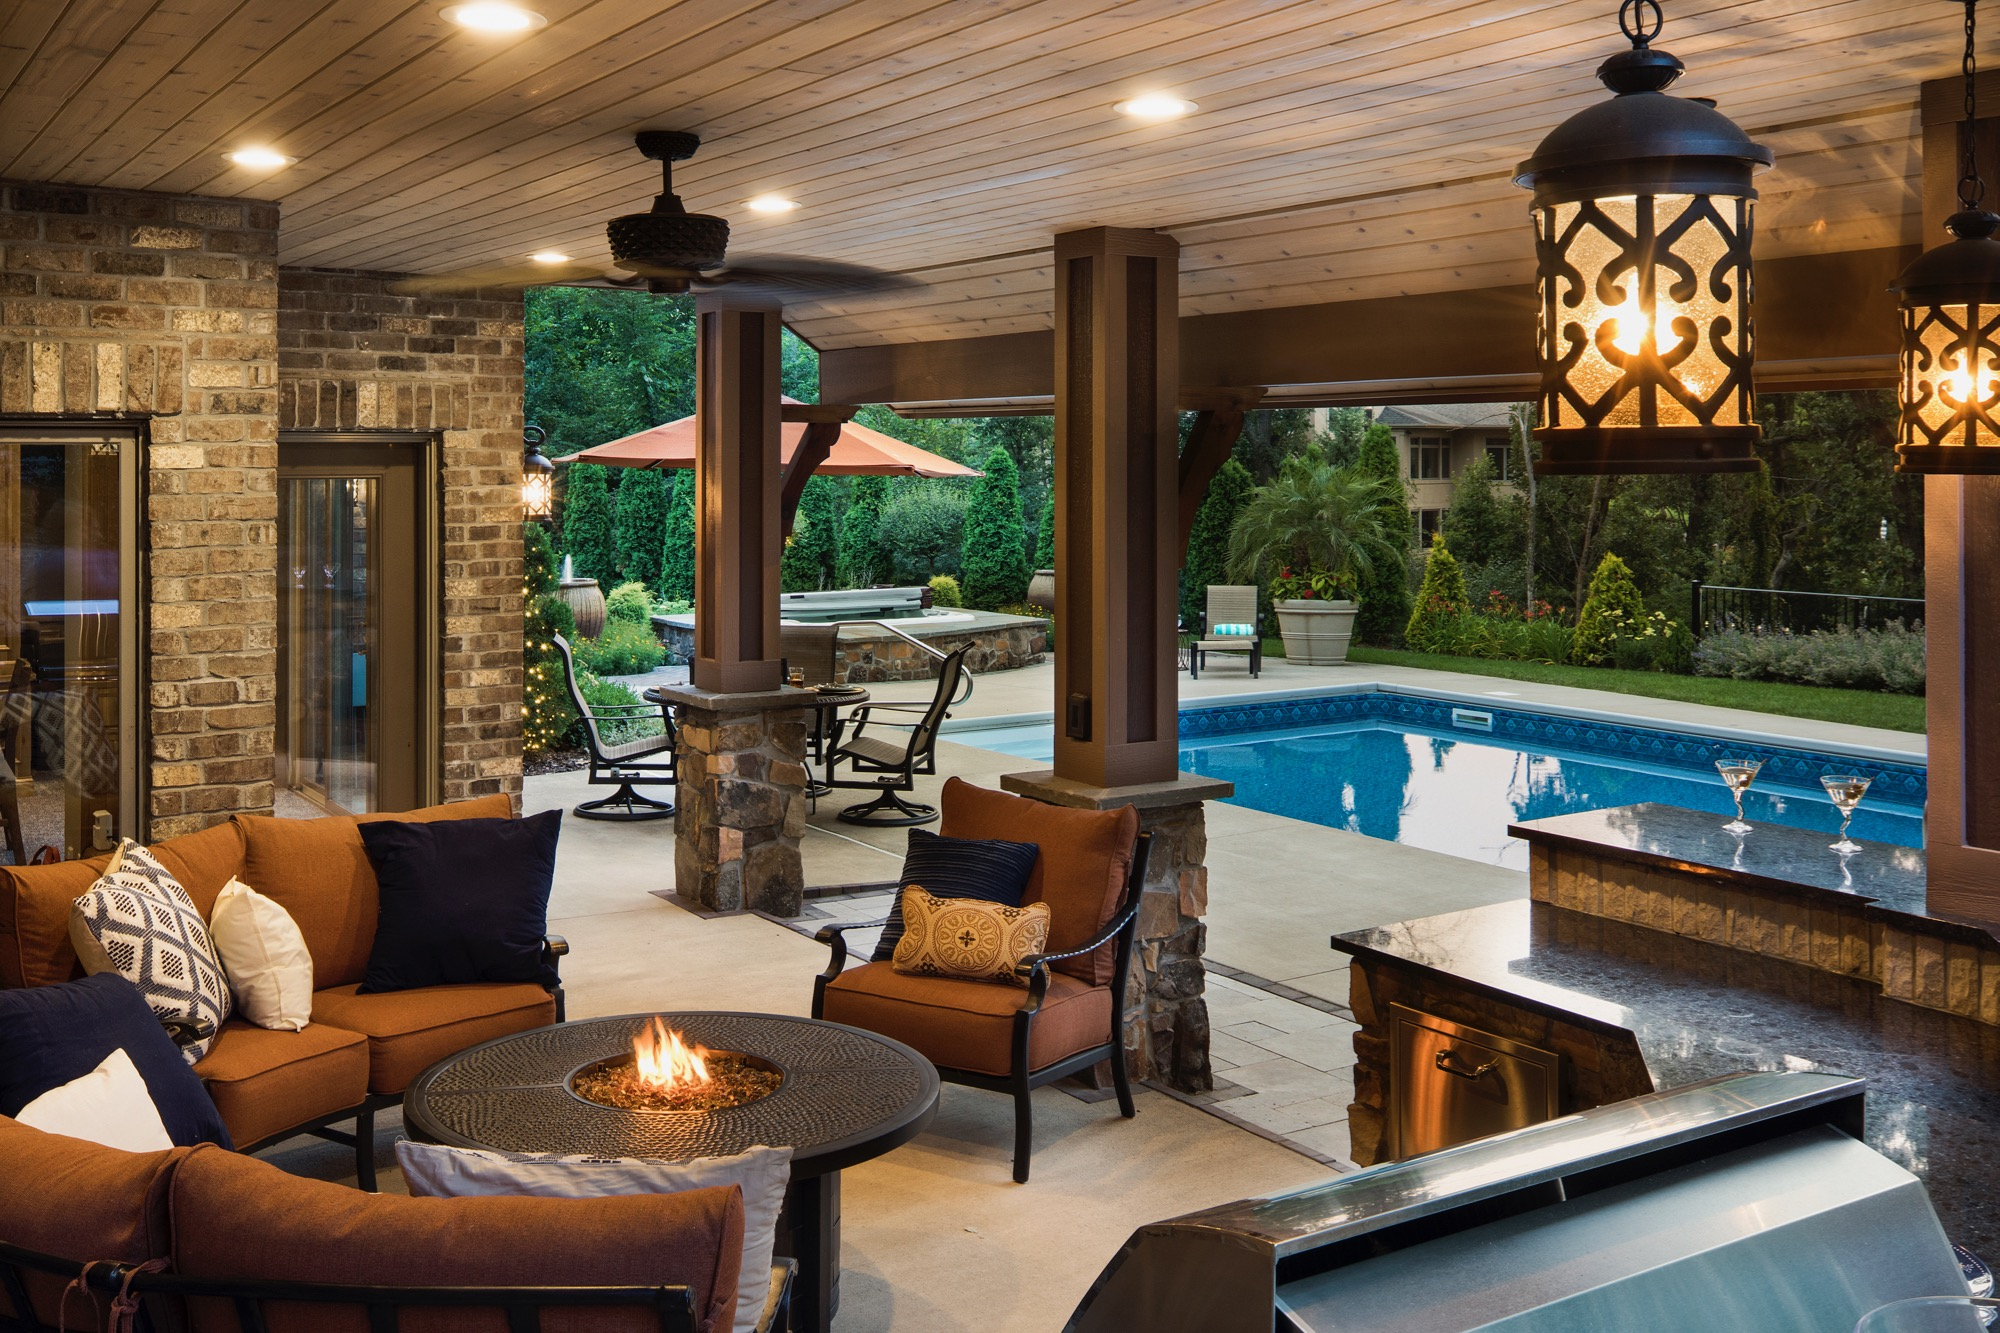 Moms Design Build - Outdoor Fireplace Furniture In ground Pool Hot Tub